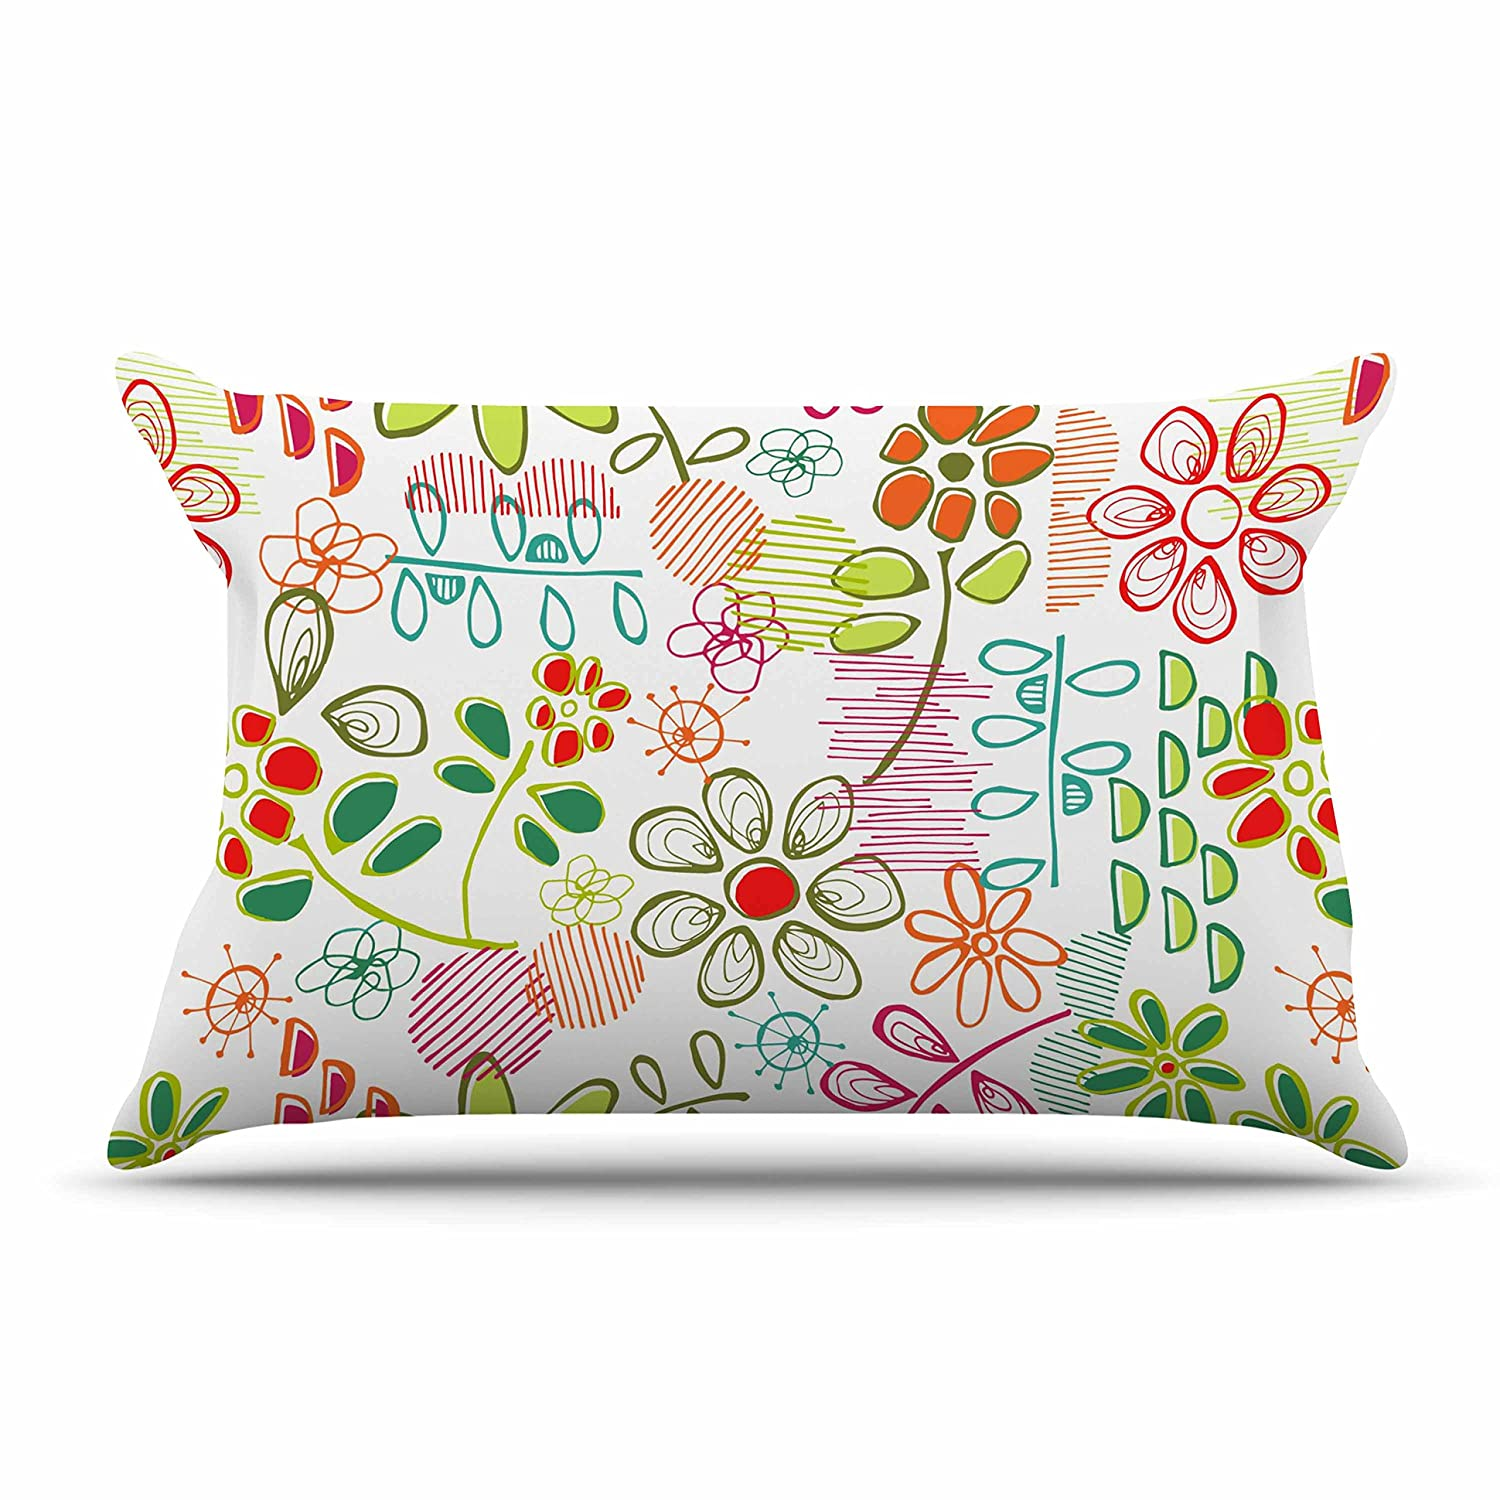 Kess InHouse Holly Helgeson Wildflower White Multicolor Pillow Sham 40 x 20